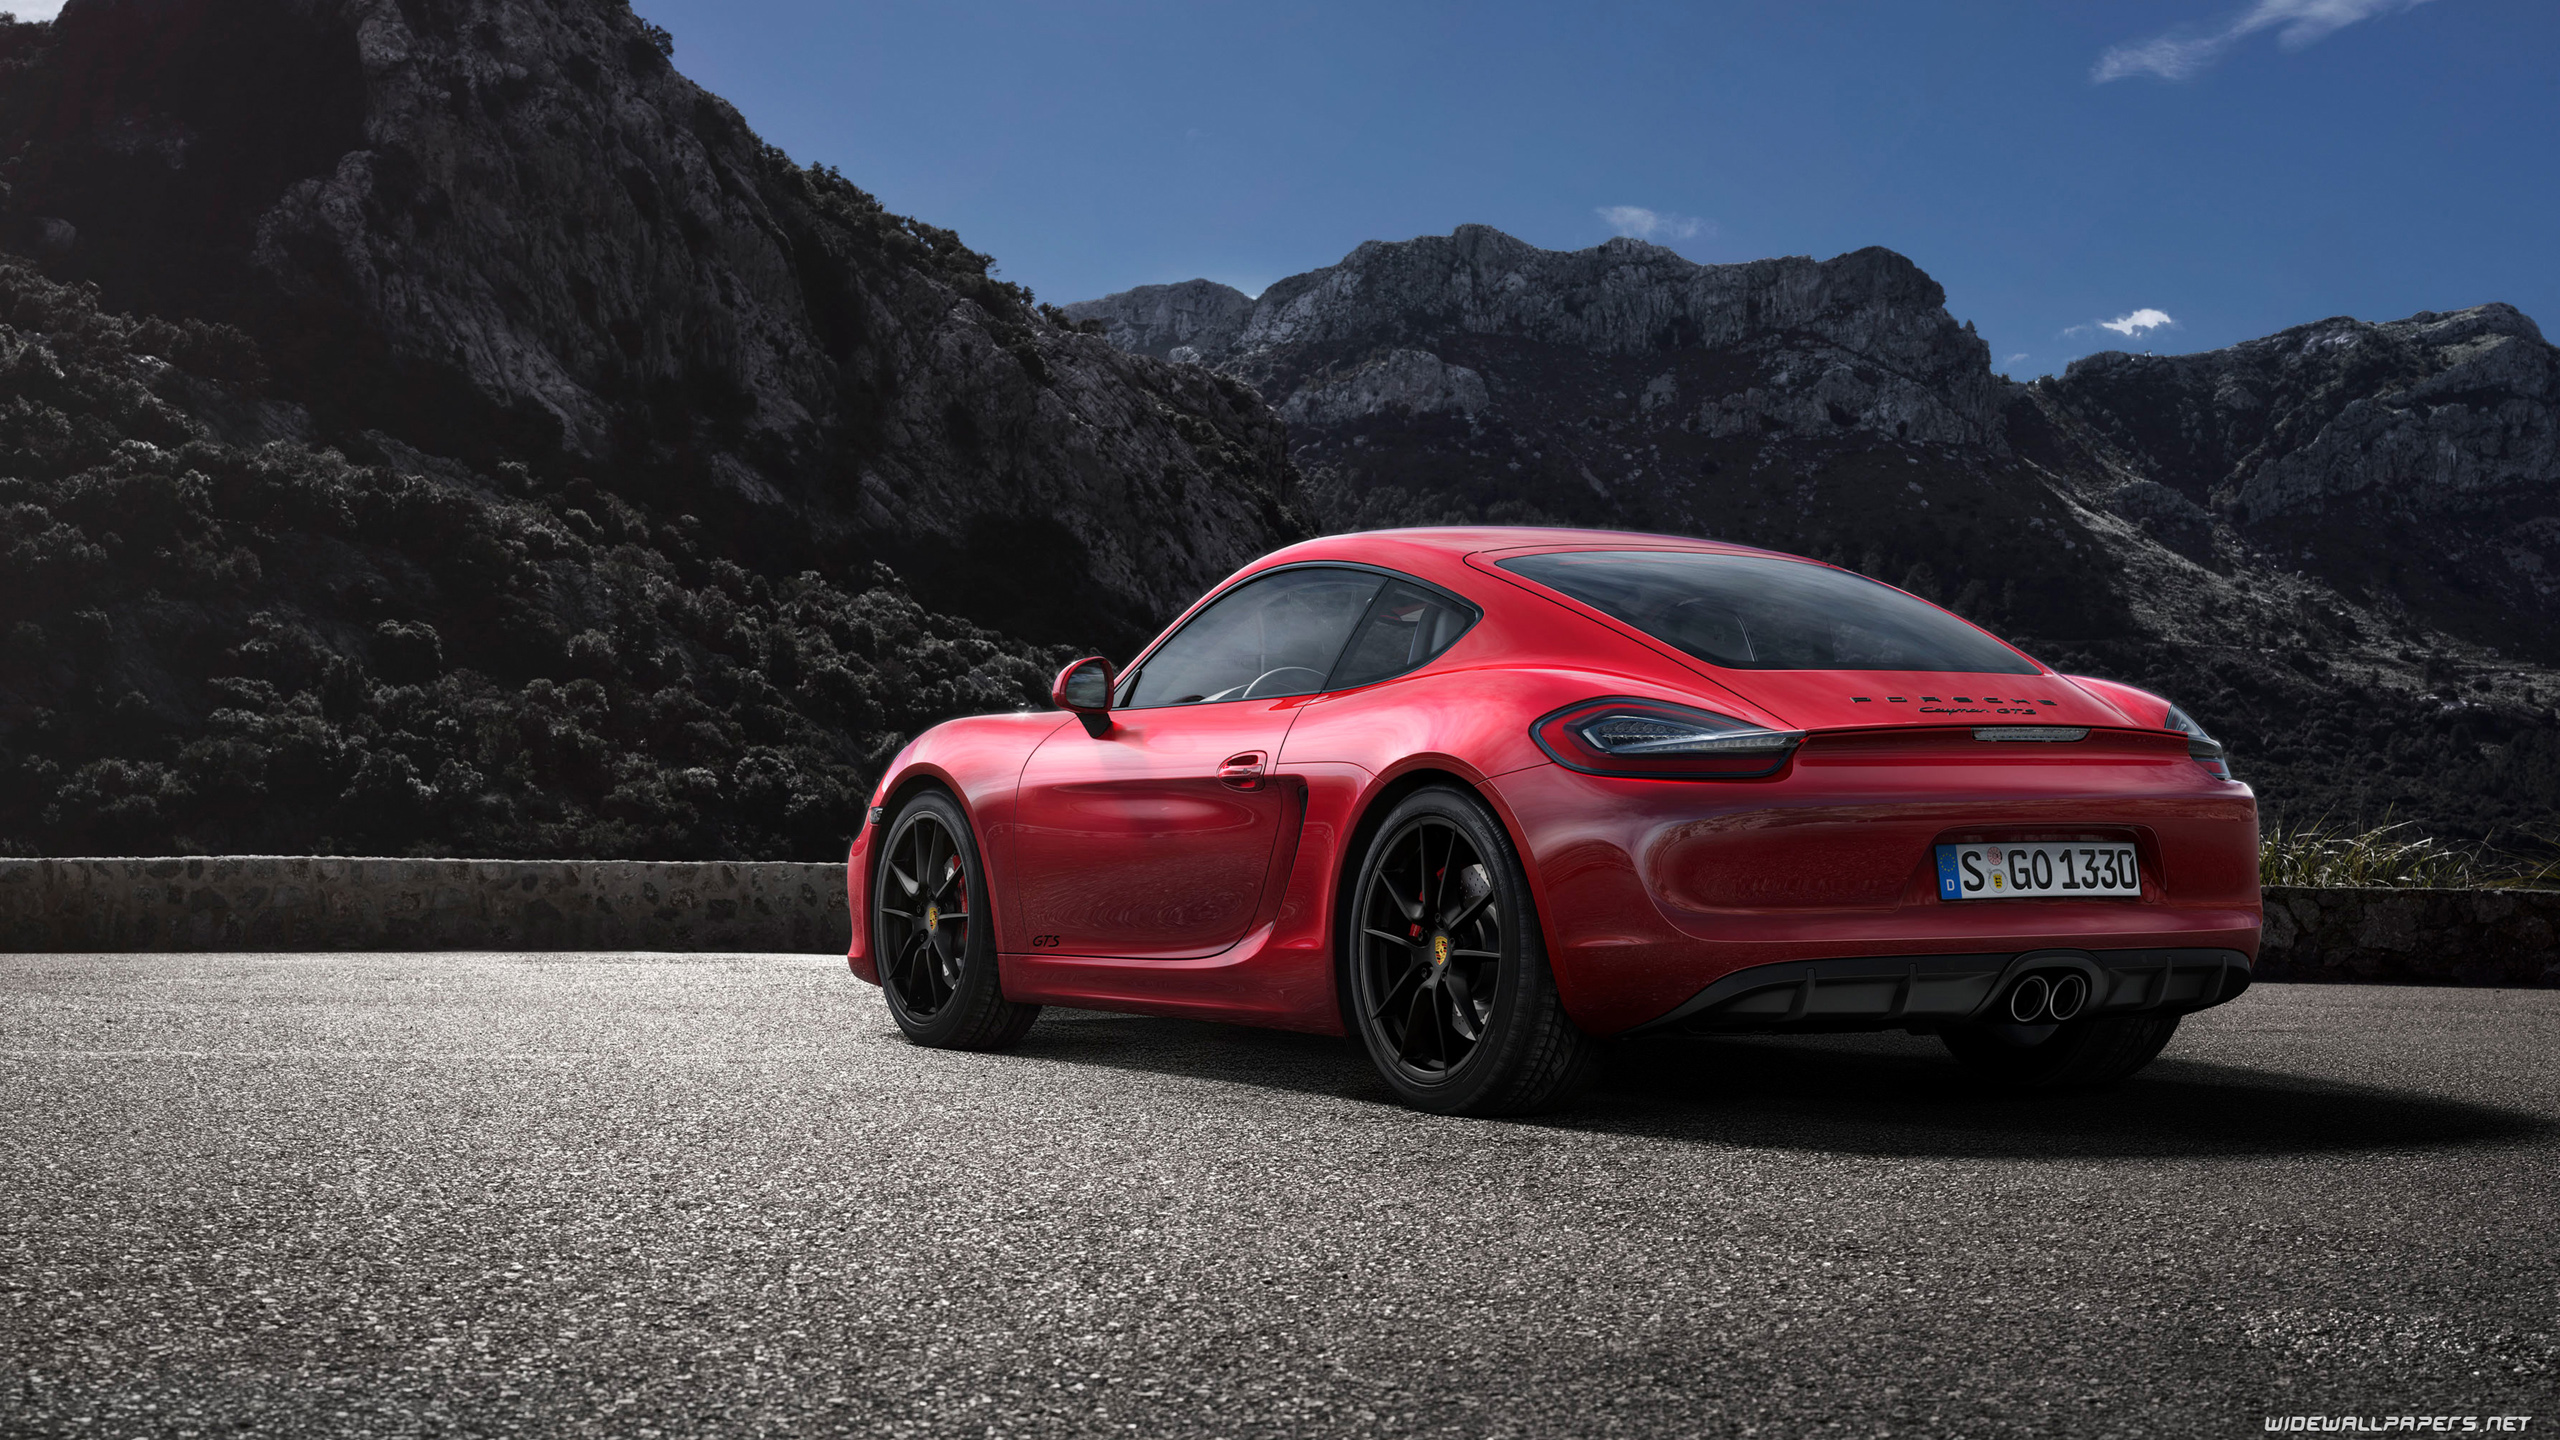 Porsche Cayman Cars Desktop Wallpapers 4k Ultra Hd Page 3